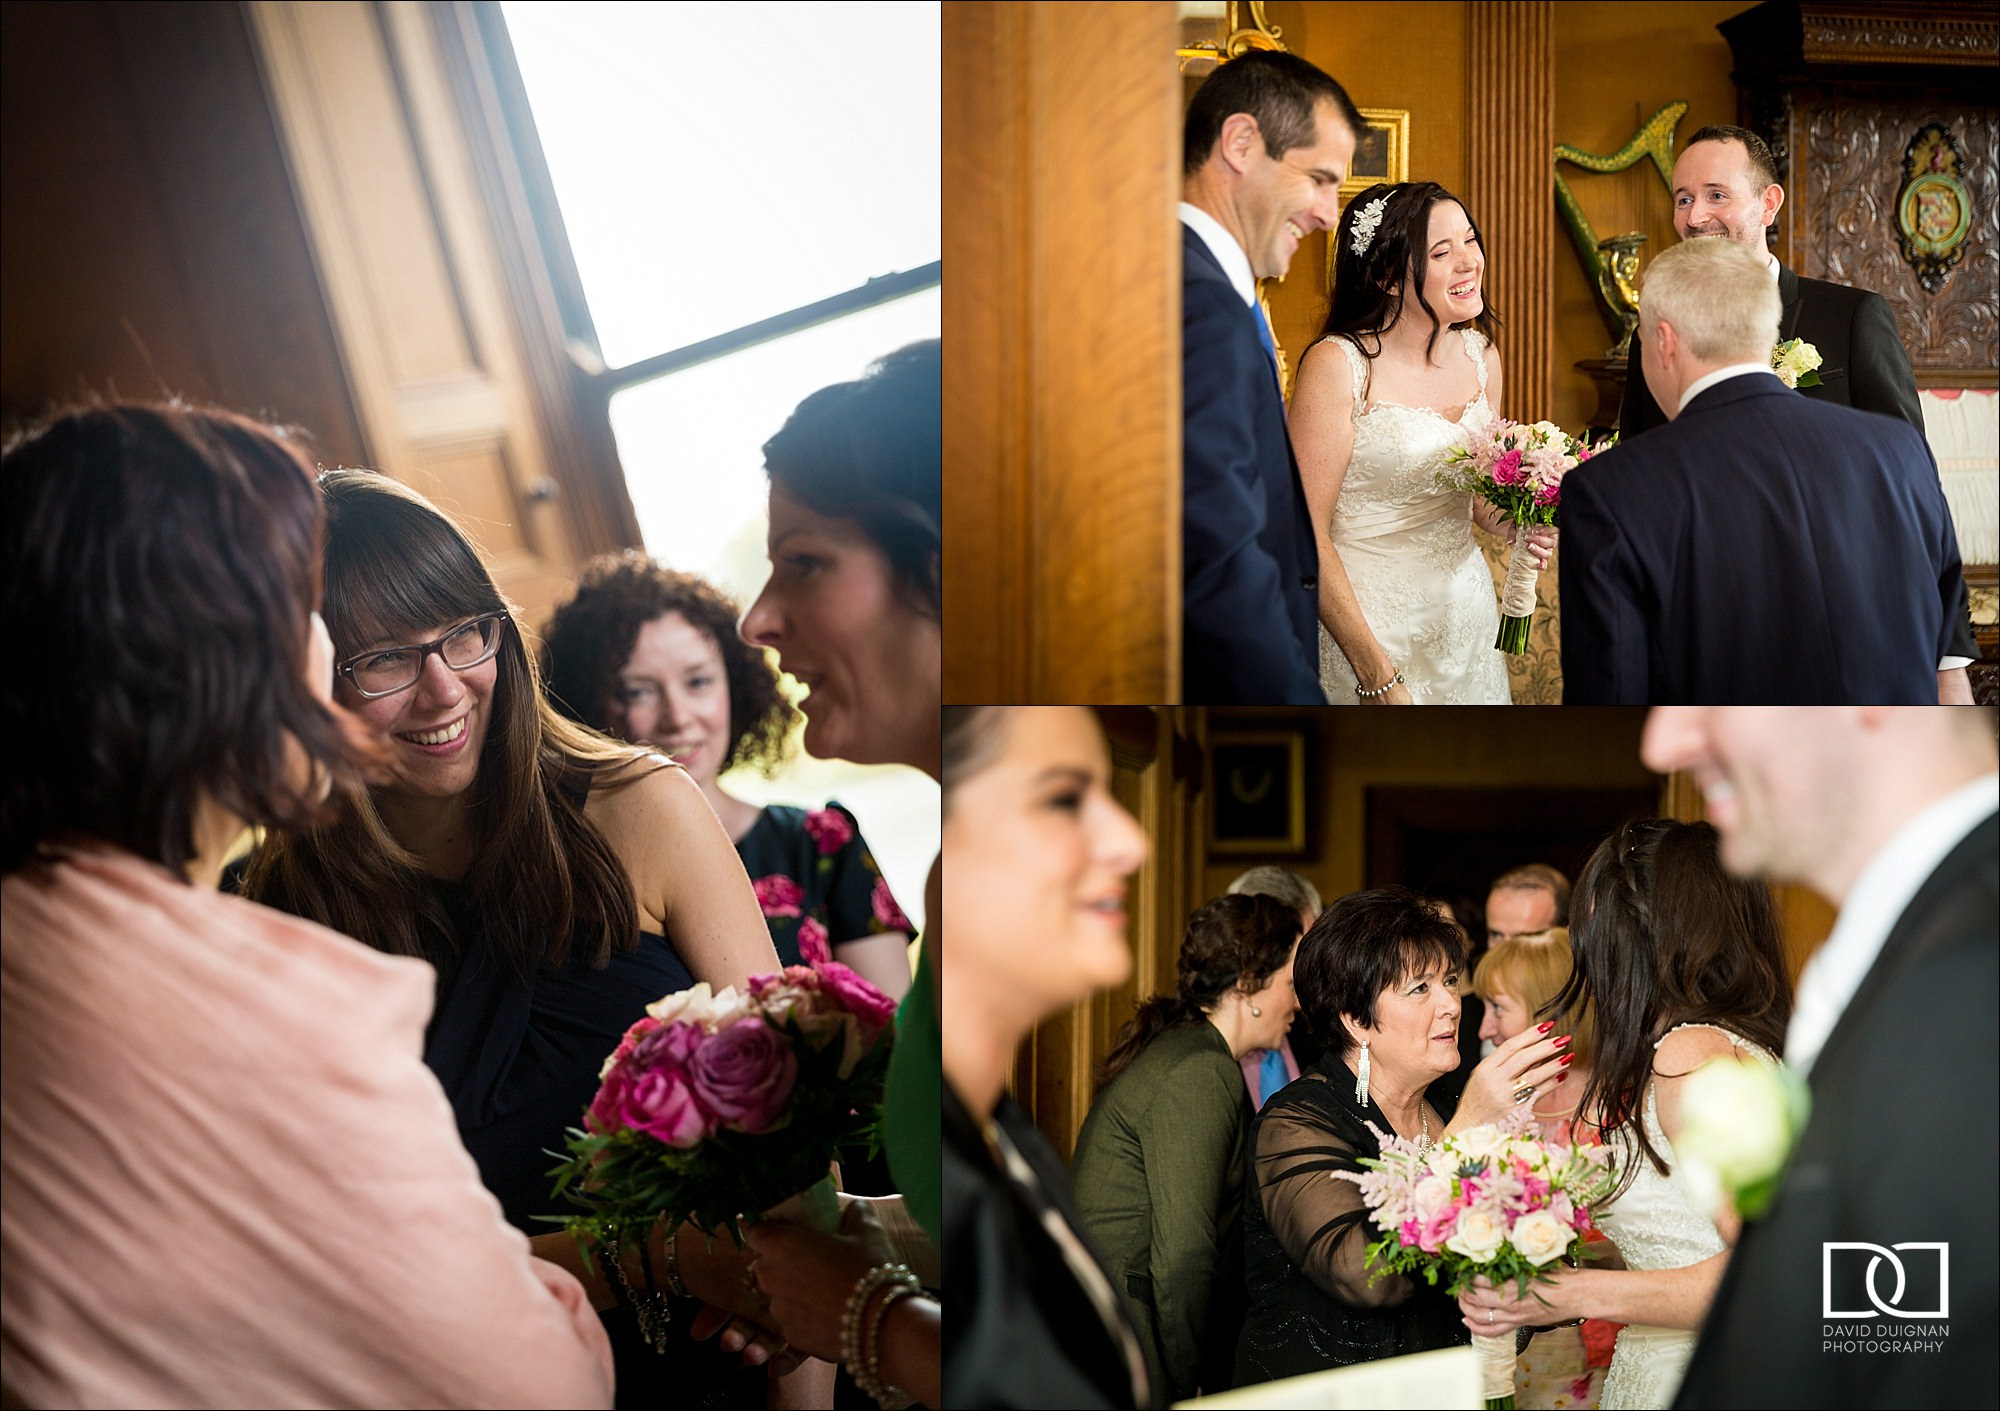 dublin wedding photographer david duignan photography castle leslie weddings Ireland 0022